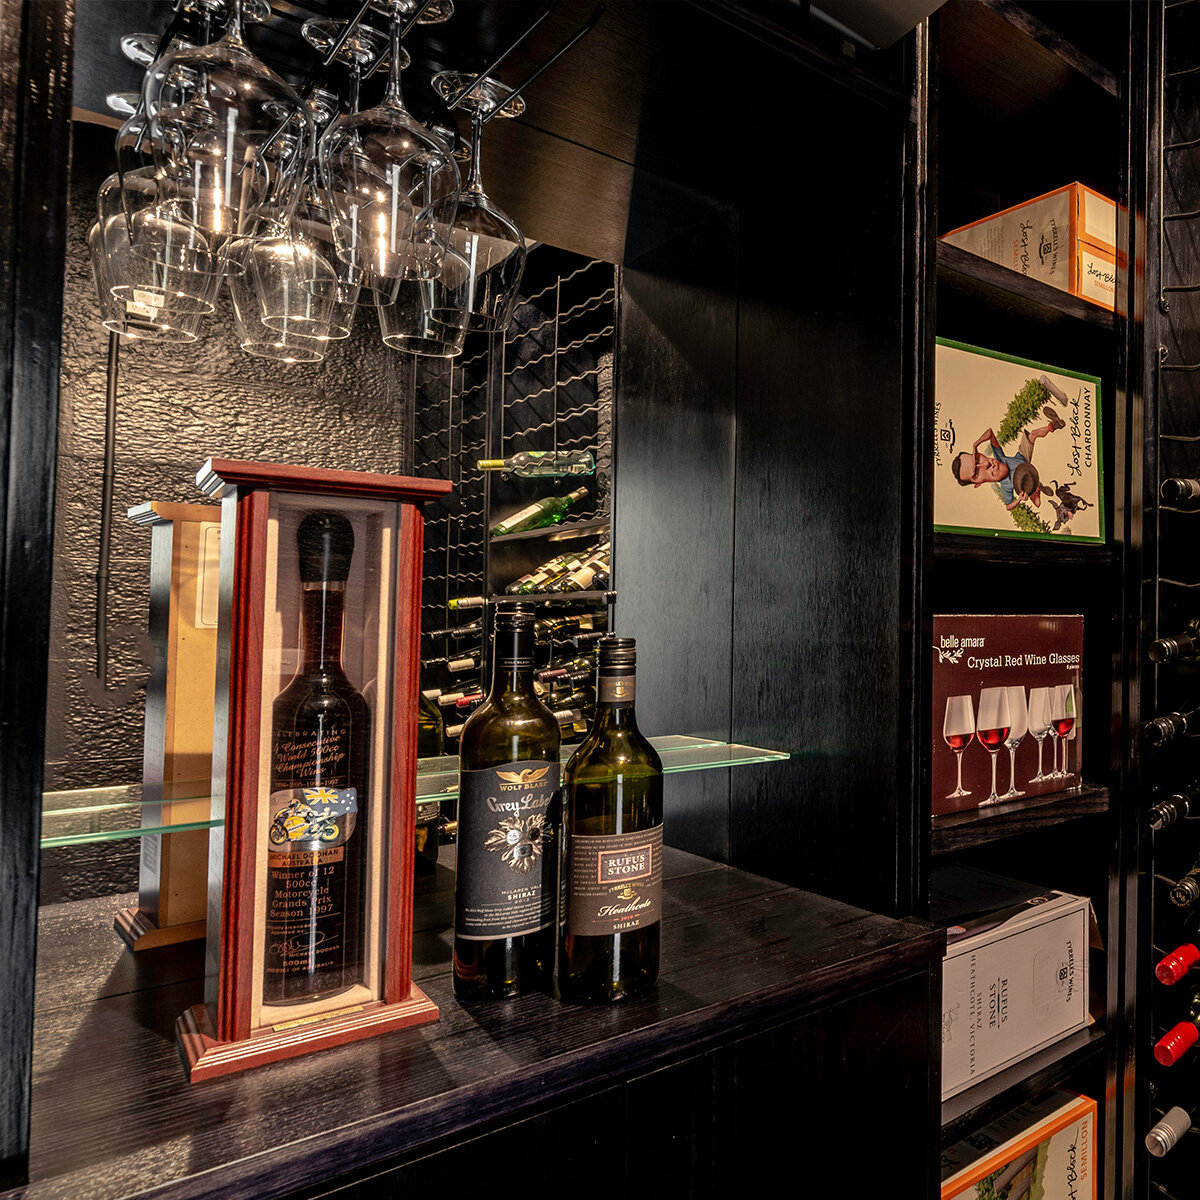 Your tailor-made cellar - Every wine collection is different, so why not design a cellar to your needs? Our designers will work with you to realise the perfect wine cellar, whether you prefer wall-to-wall racks or room for a tasting table. The choice is yours.